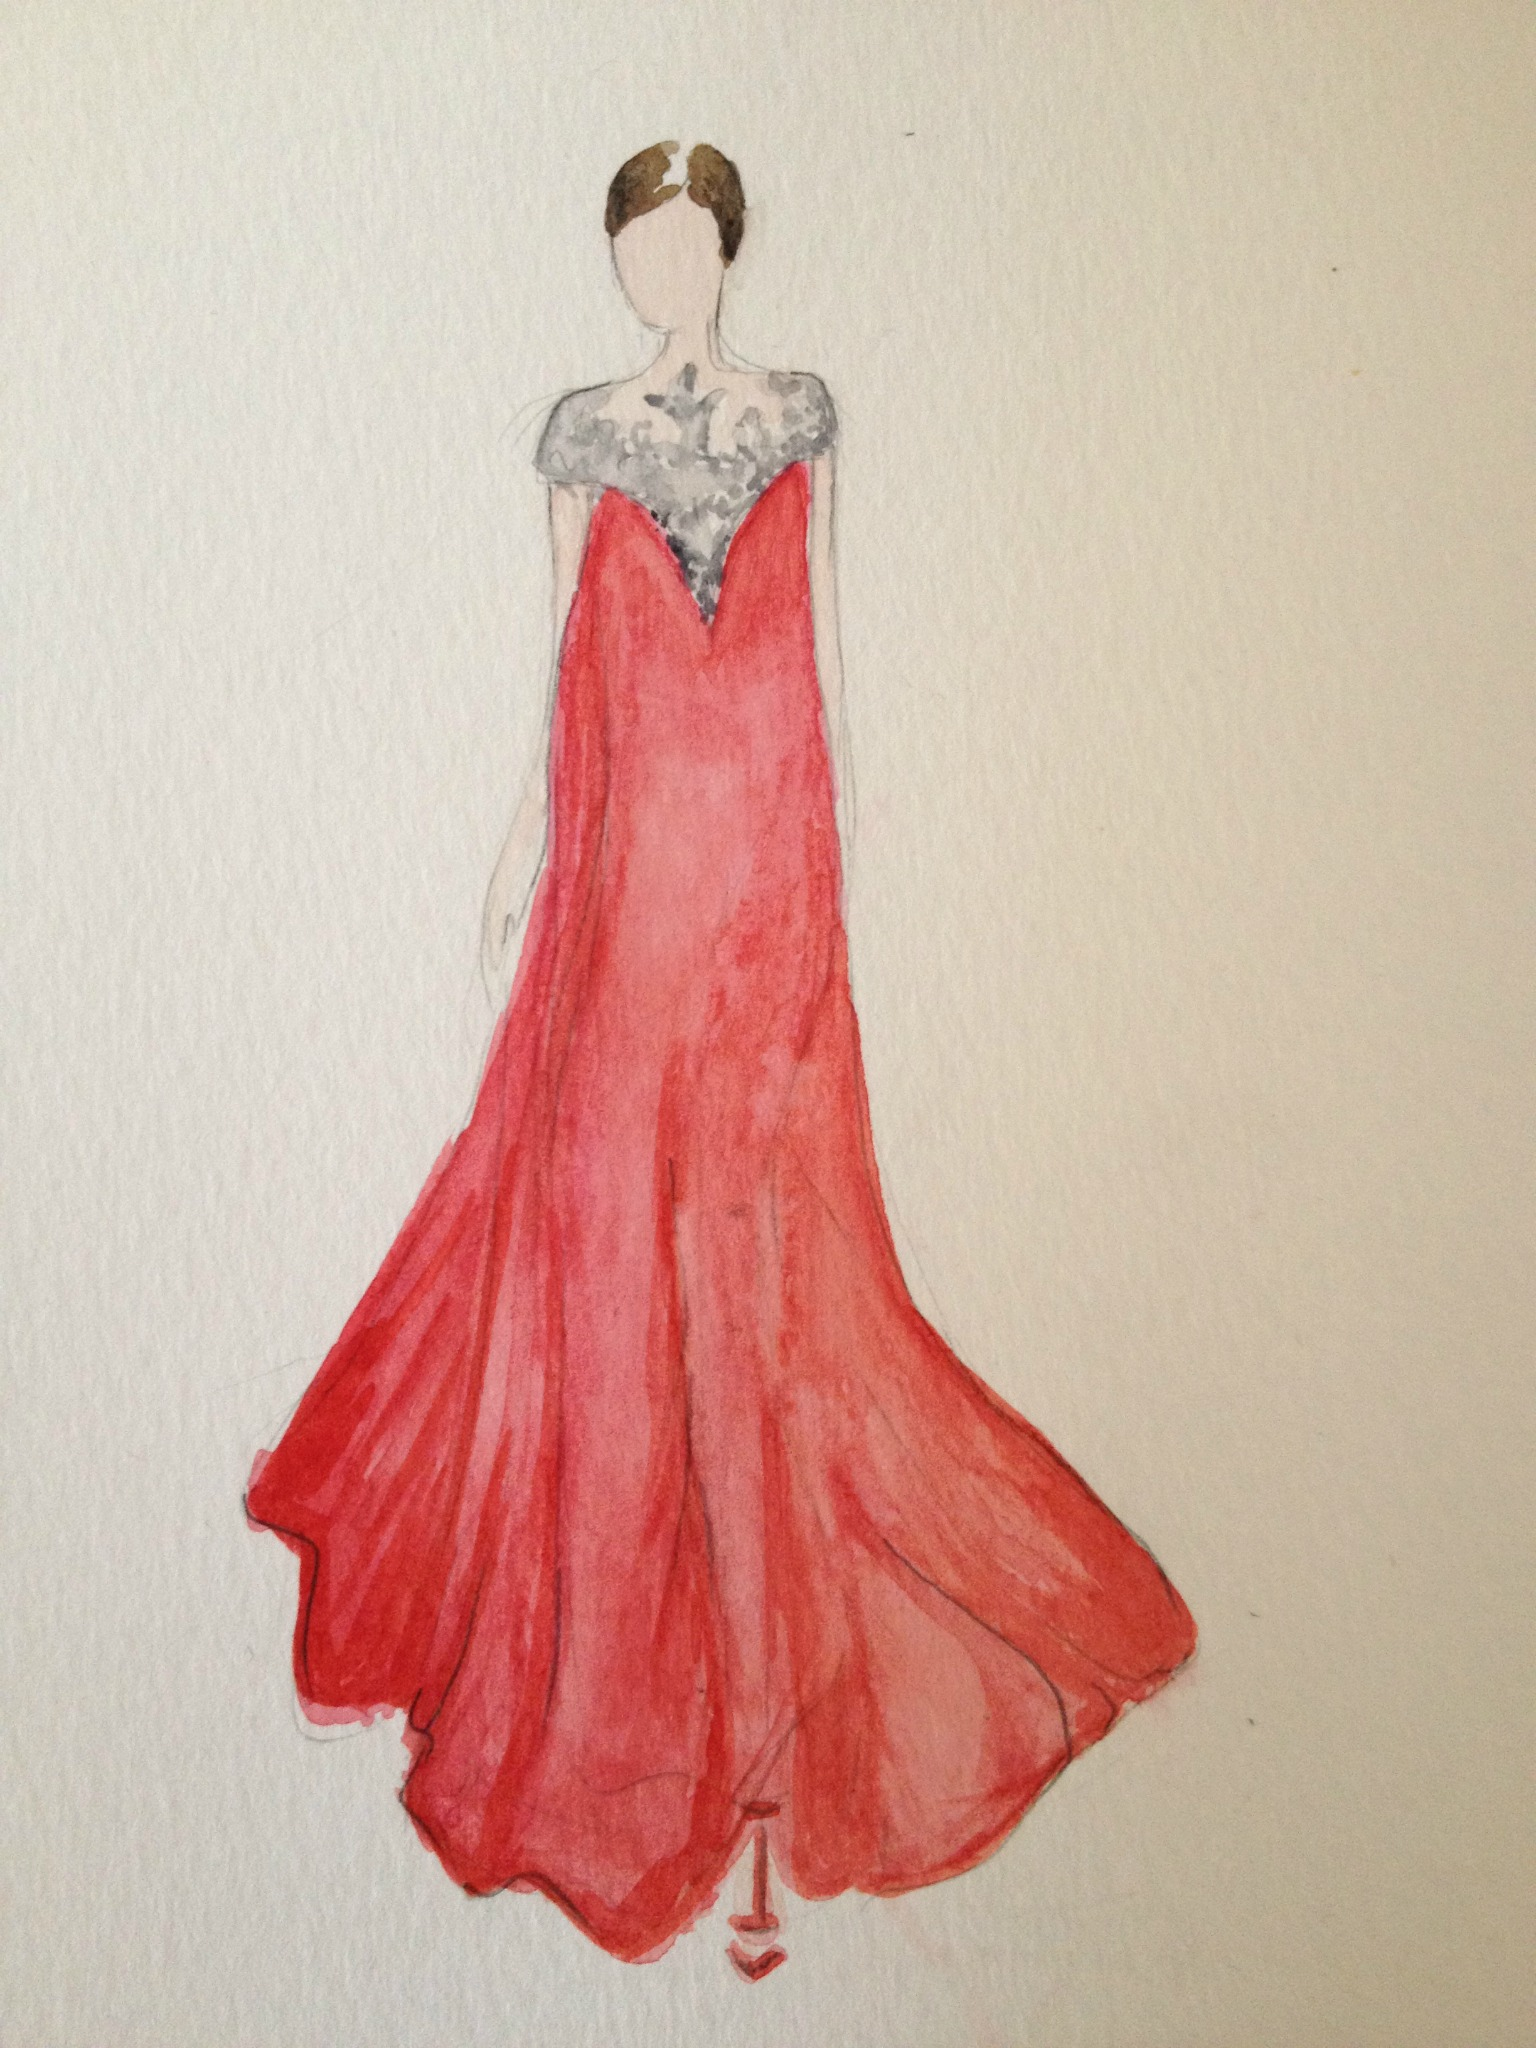 Final embellished watercolors: Silk and Tulle - image 4 - student project